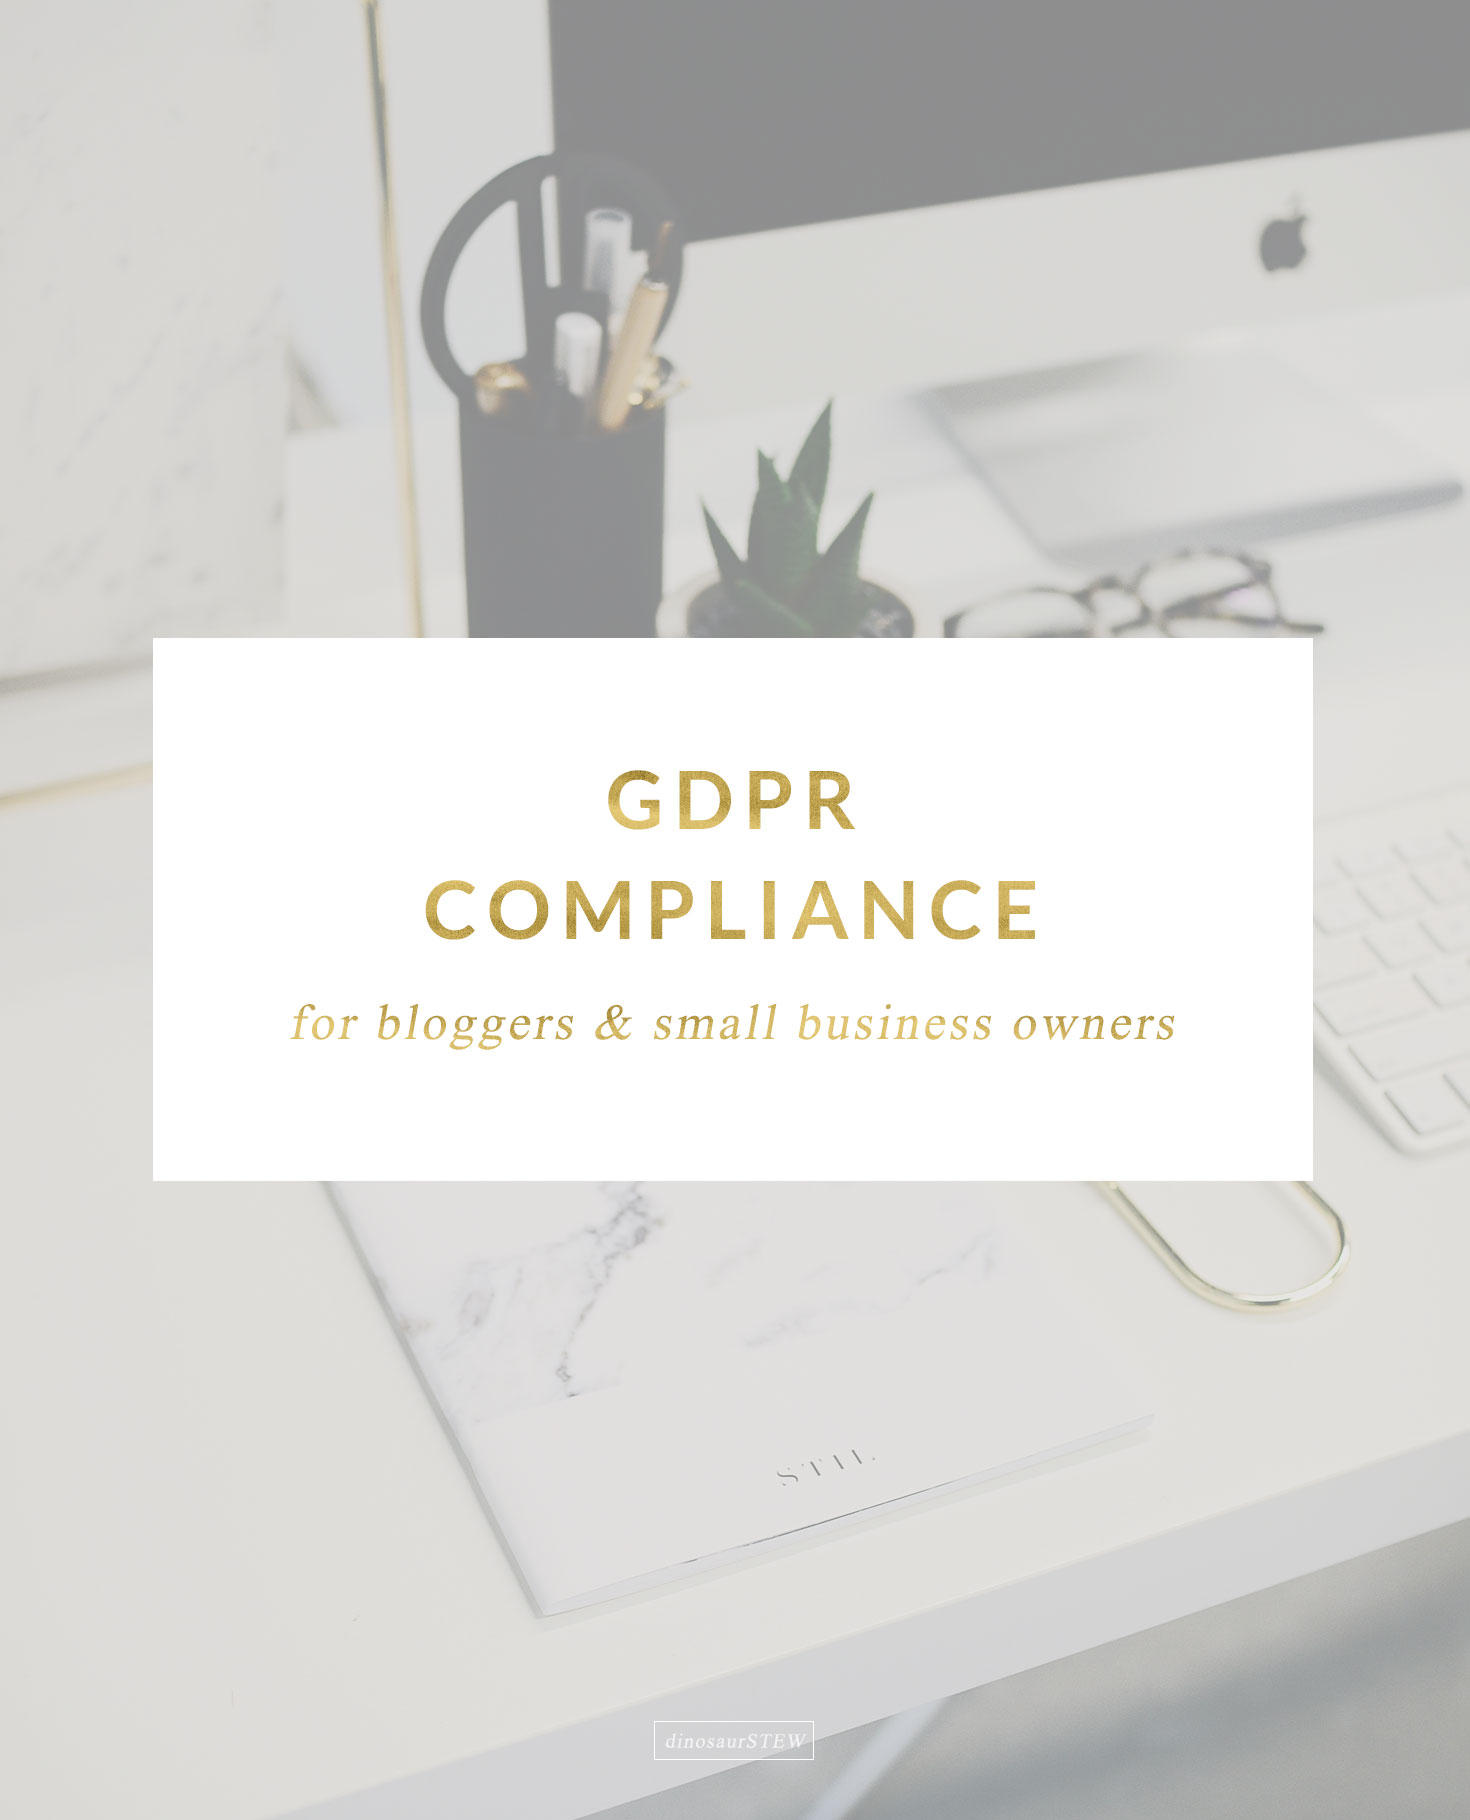 GDPR Compliance for small business owners